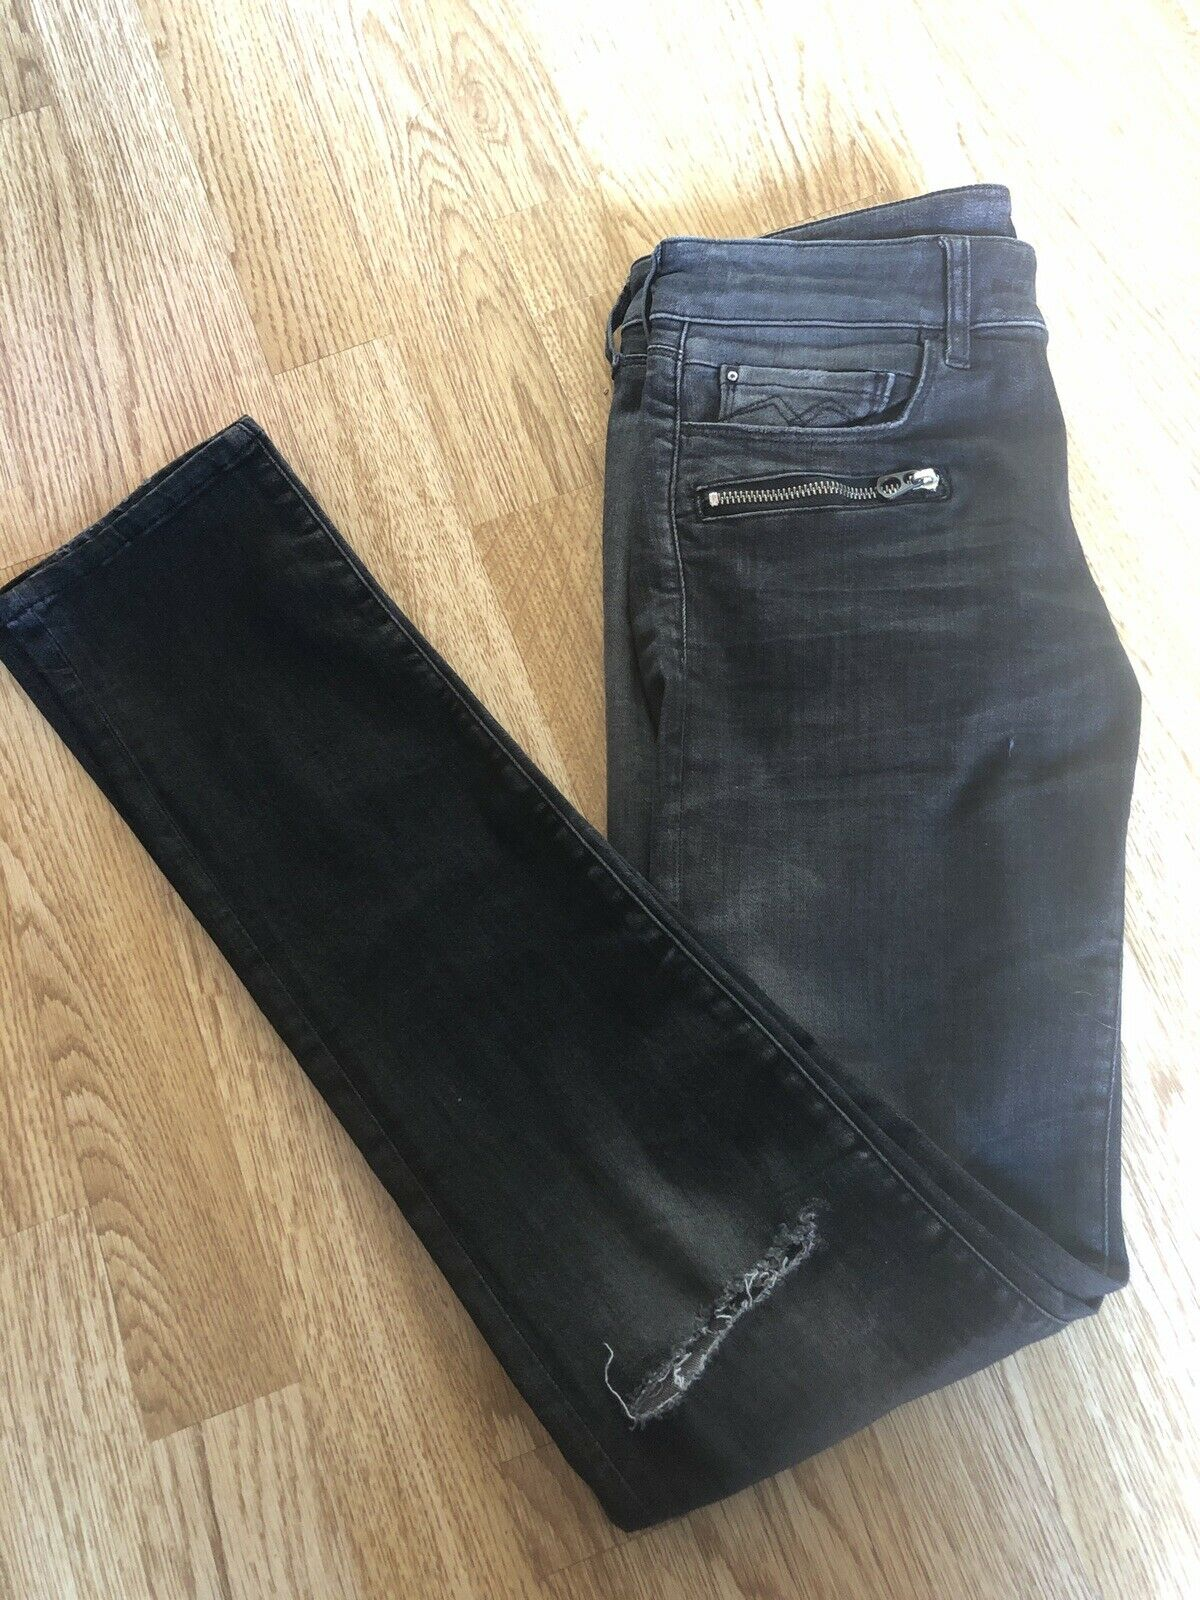 Replay Brigidot Skinny Ripped Jeans Dark Grey W28 L 32 - BNWT